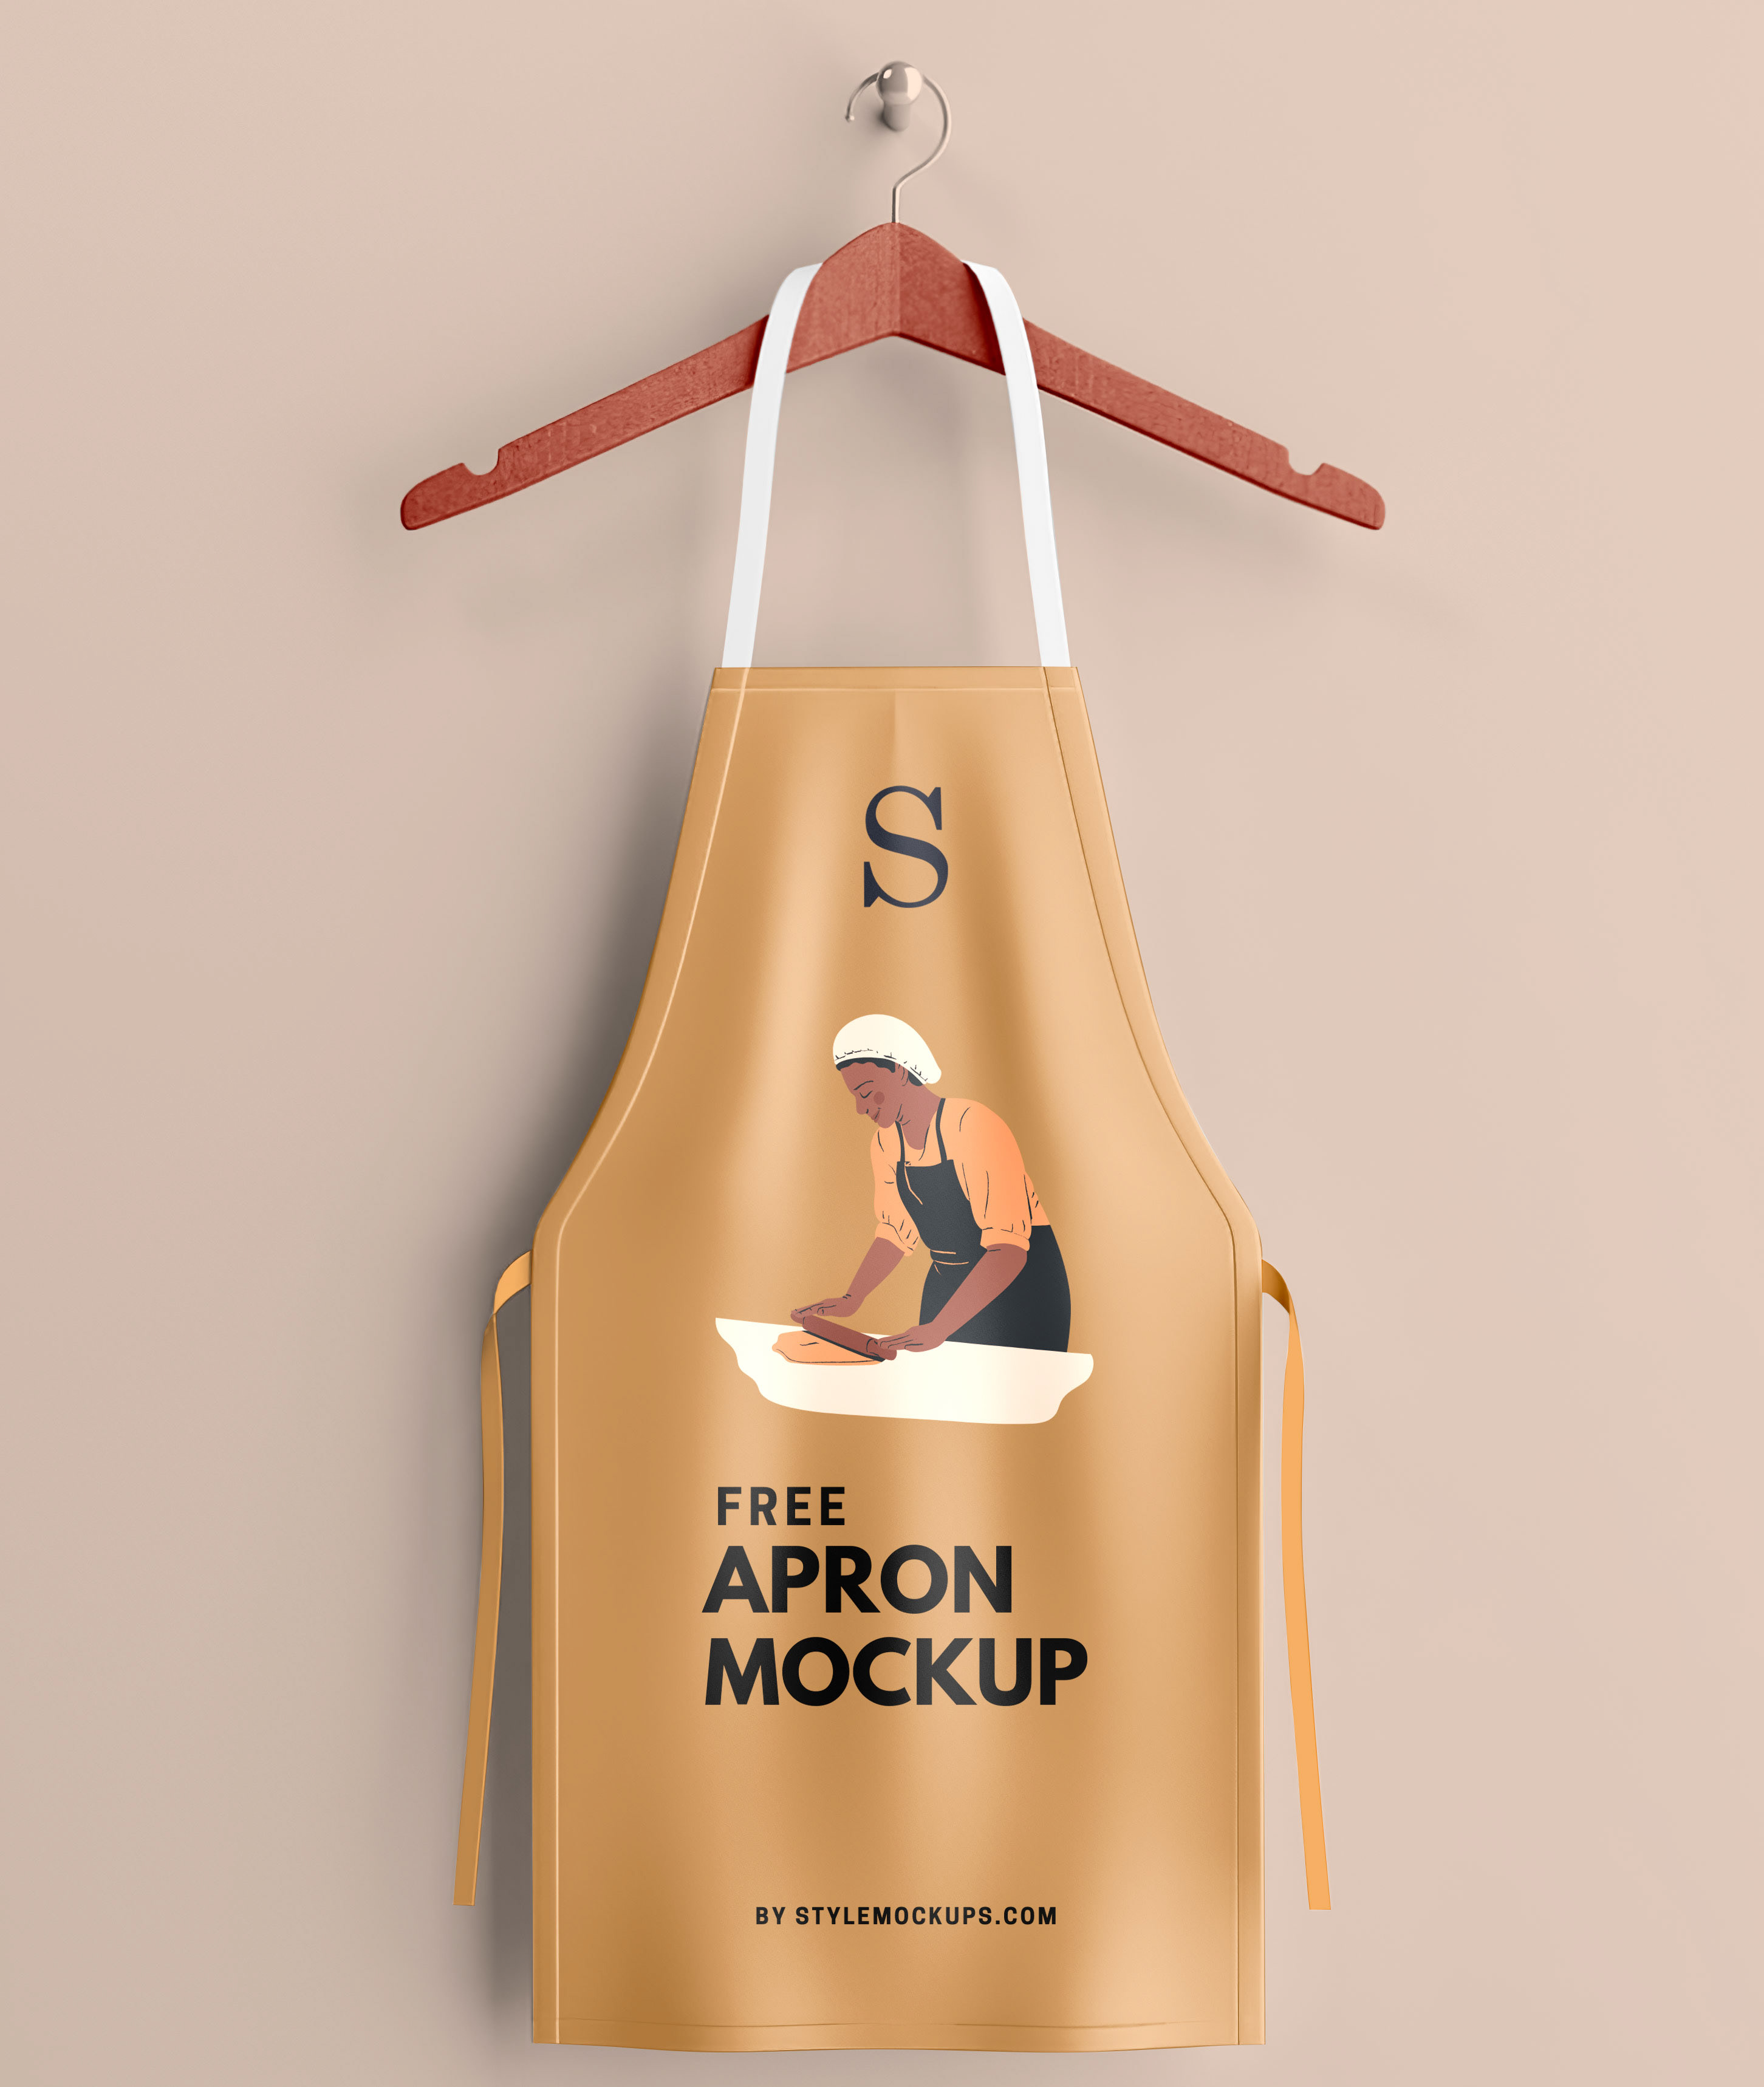 Free apron mockup psd is the best way to present your restaurant logo branding fast food cooking related. Apron Mockup Projects Photos Videos Logos Illustrations And Branding On Behance